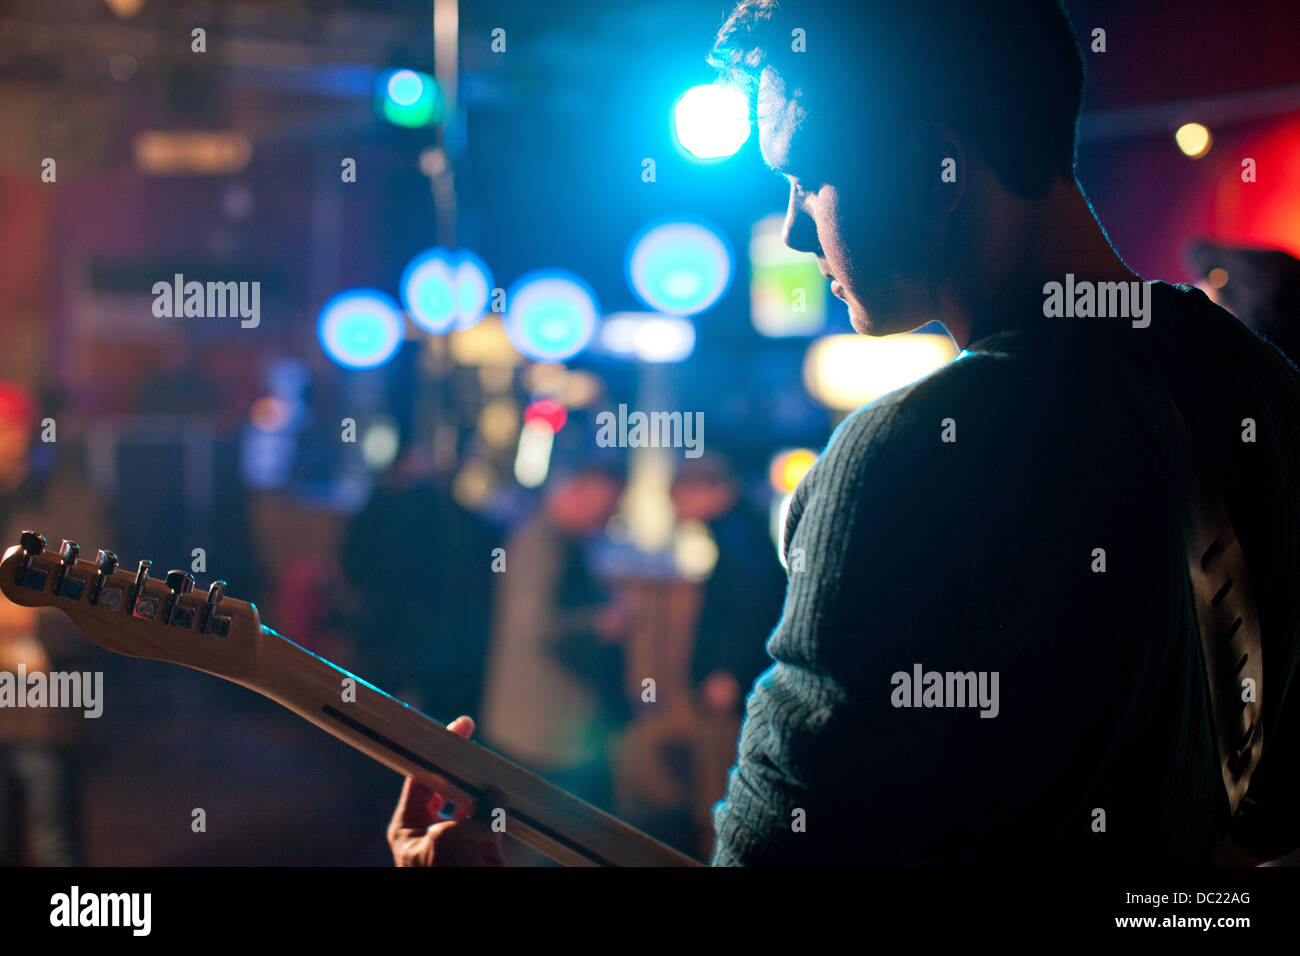 Man on stage playing guitar in nightclub - Stock Image